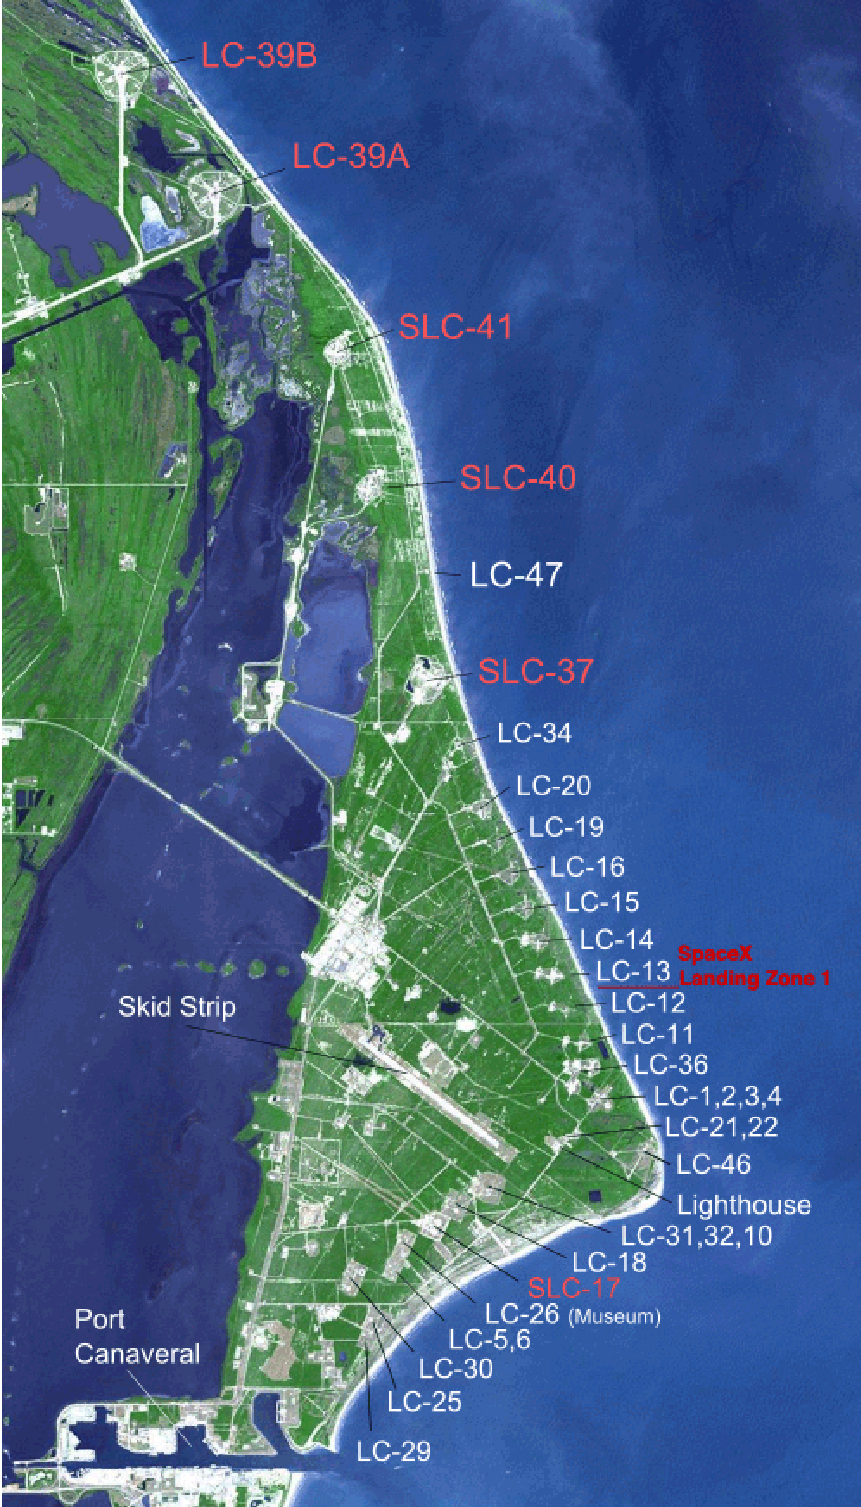 Cape Canaveral Air Force Station Launch Complexes